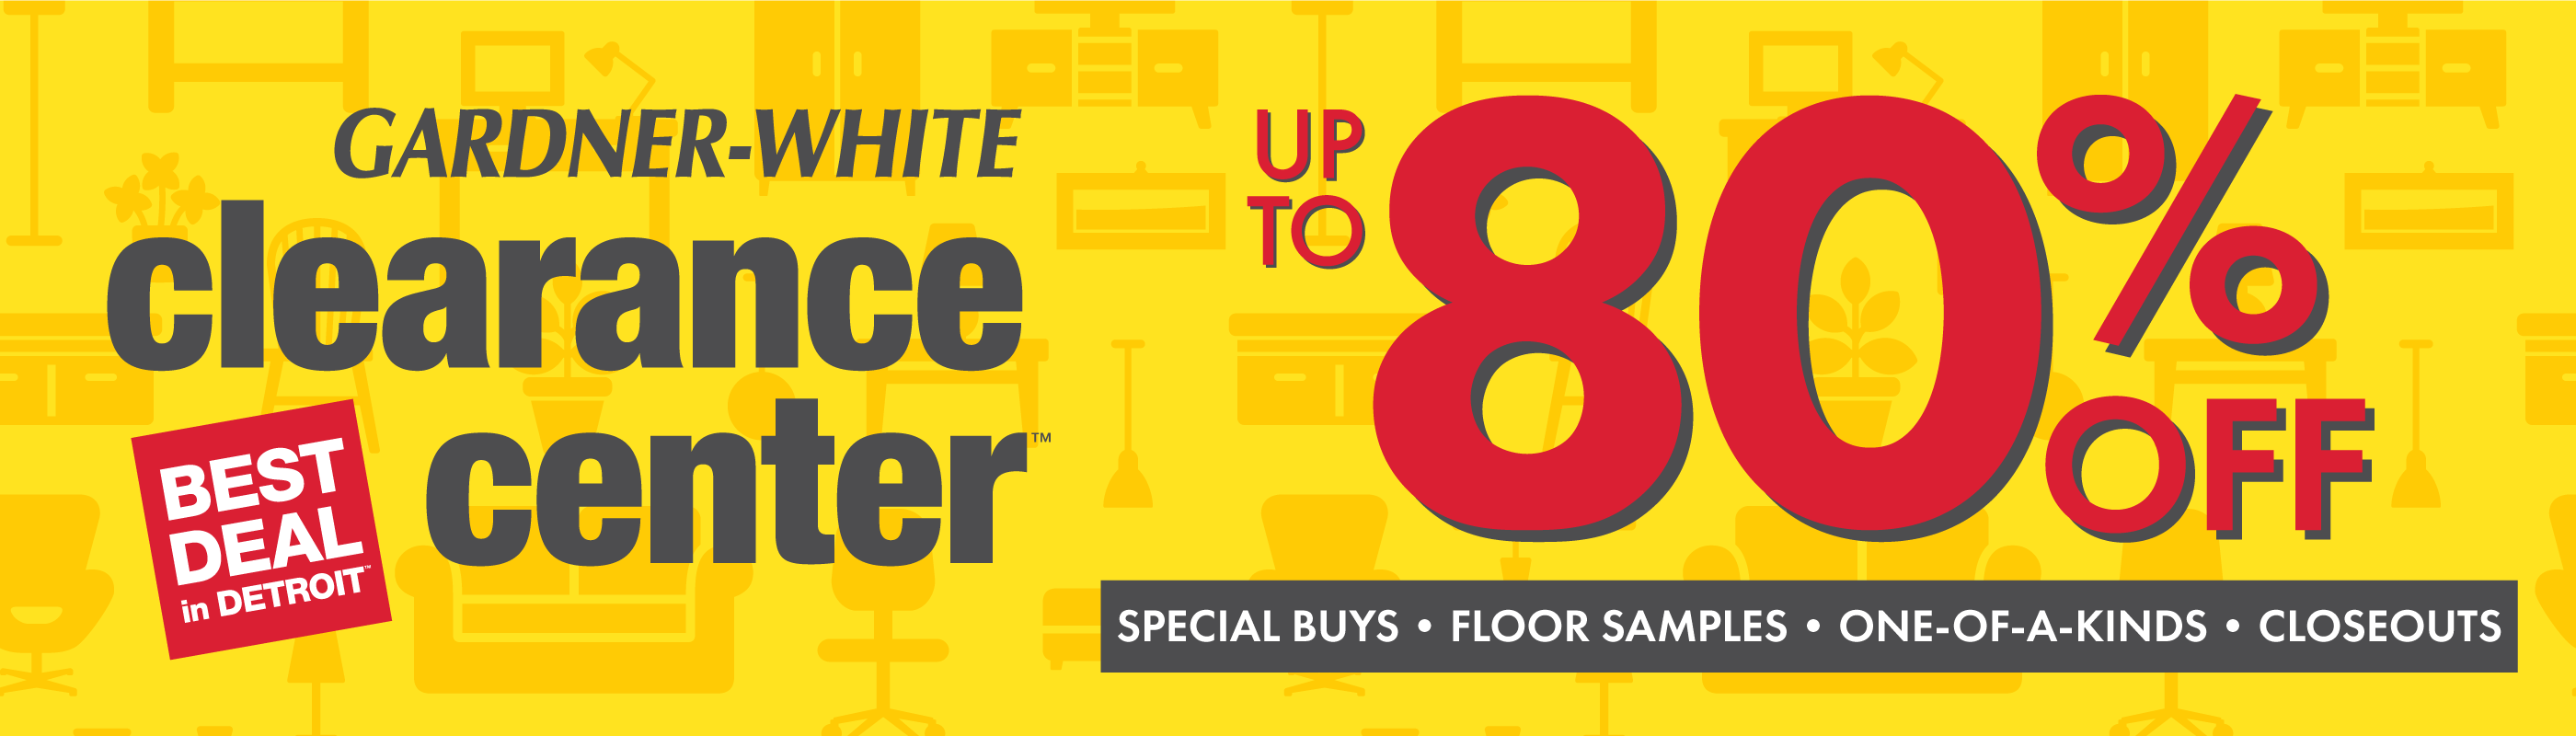 Gardner-White Clearance Center: Best Deal in Detroit. Up to 80% Off